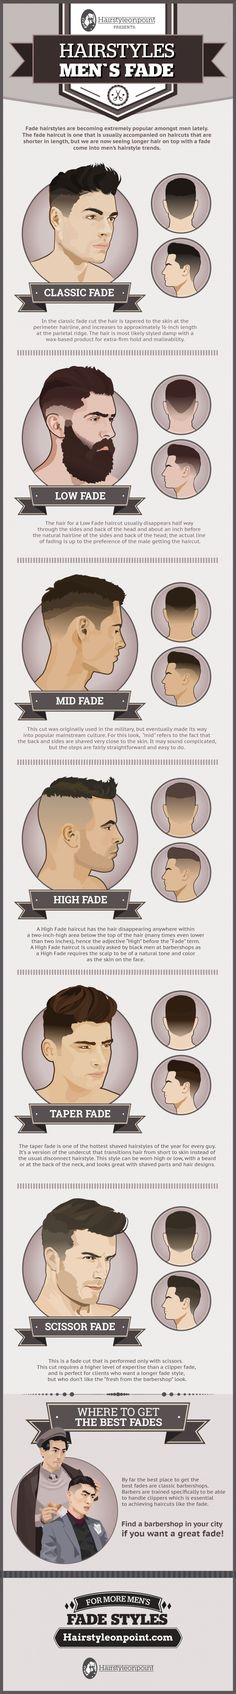 Trendy Hair Styling für Männer mit Undercut 2016 [Infographic] – More İdeas Trendy Haircuts, Haircuts For Men, Haircut Men, Haircut Style, Men's Haircuts Fade, How To Fade Haircut, Low Fade Mens Haircut, Hairstyle Fade, Barber Haircuts